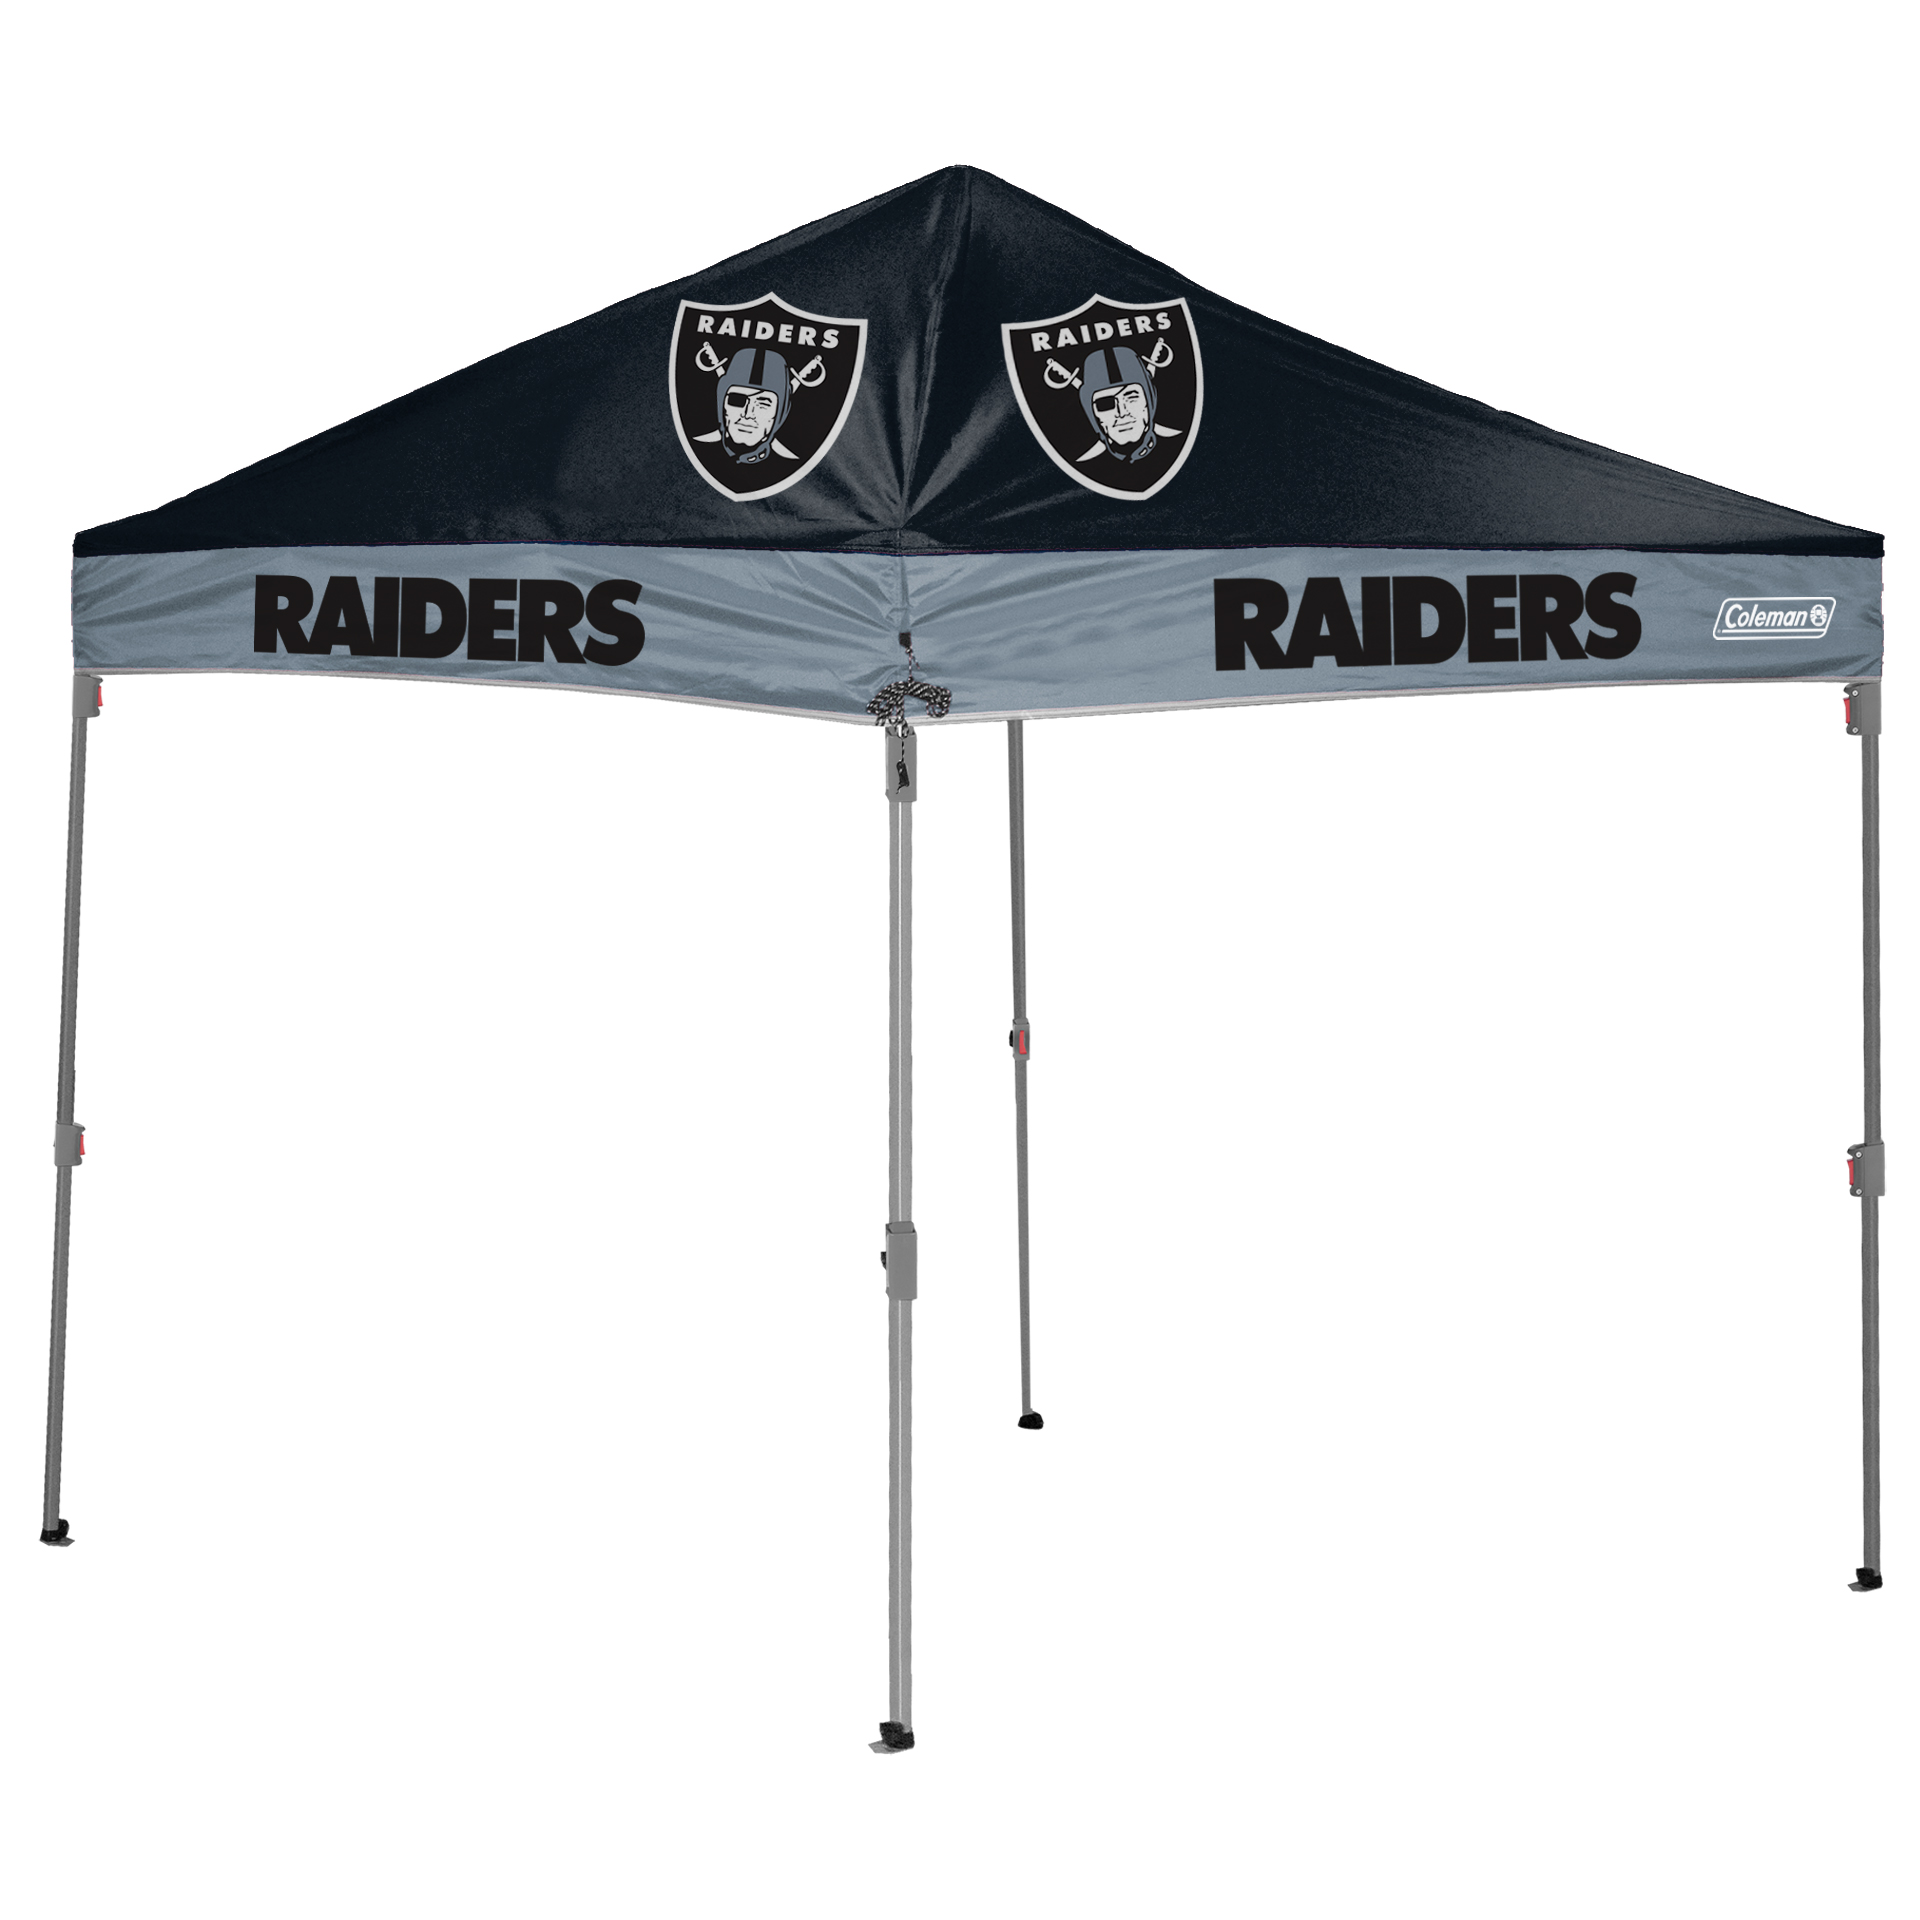 Oakland Raiders Coleman 10' x 10' 2-Tone Straight Leg Canopy - No Size